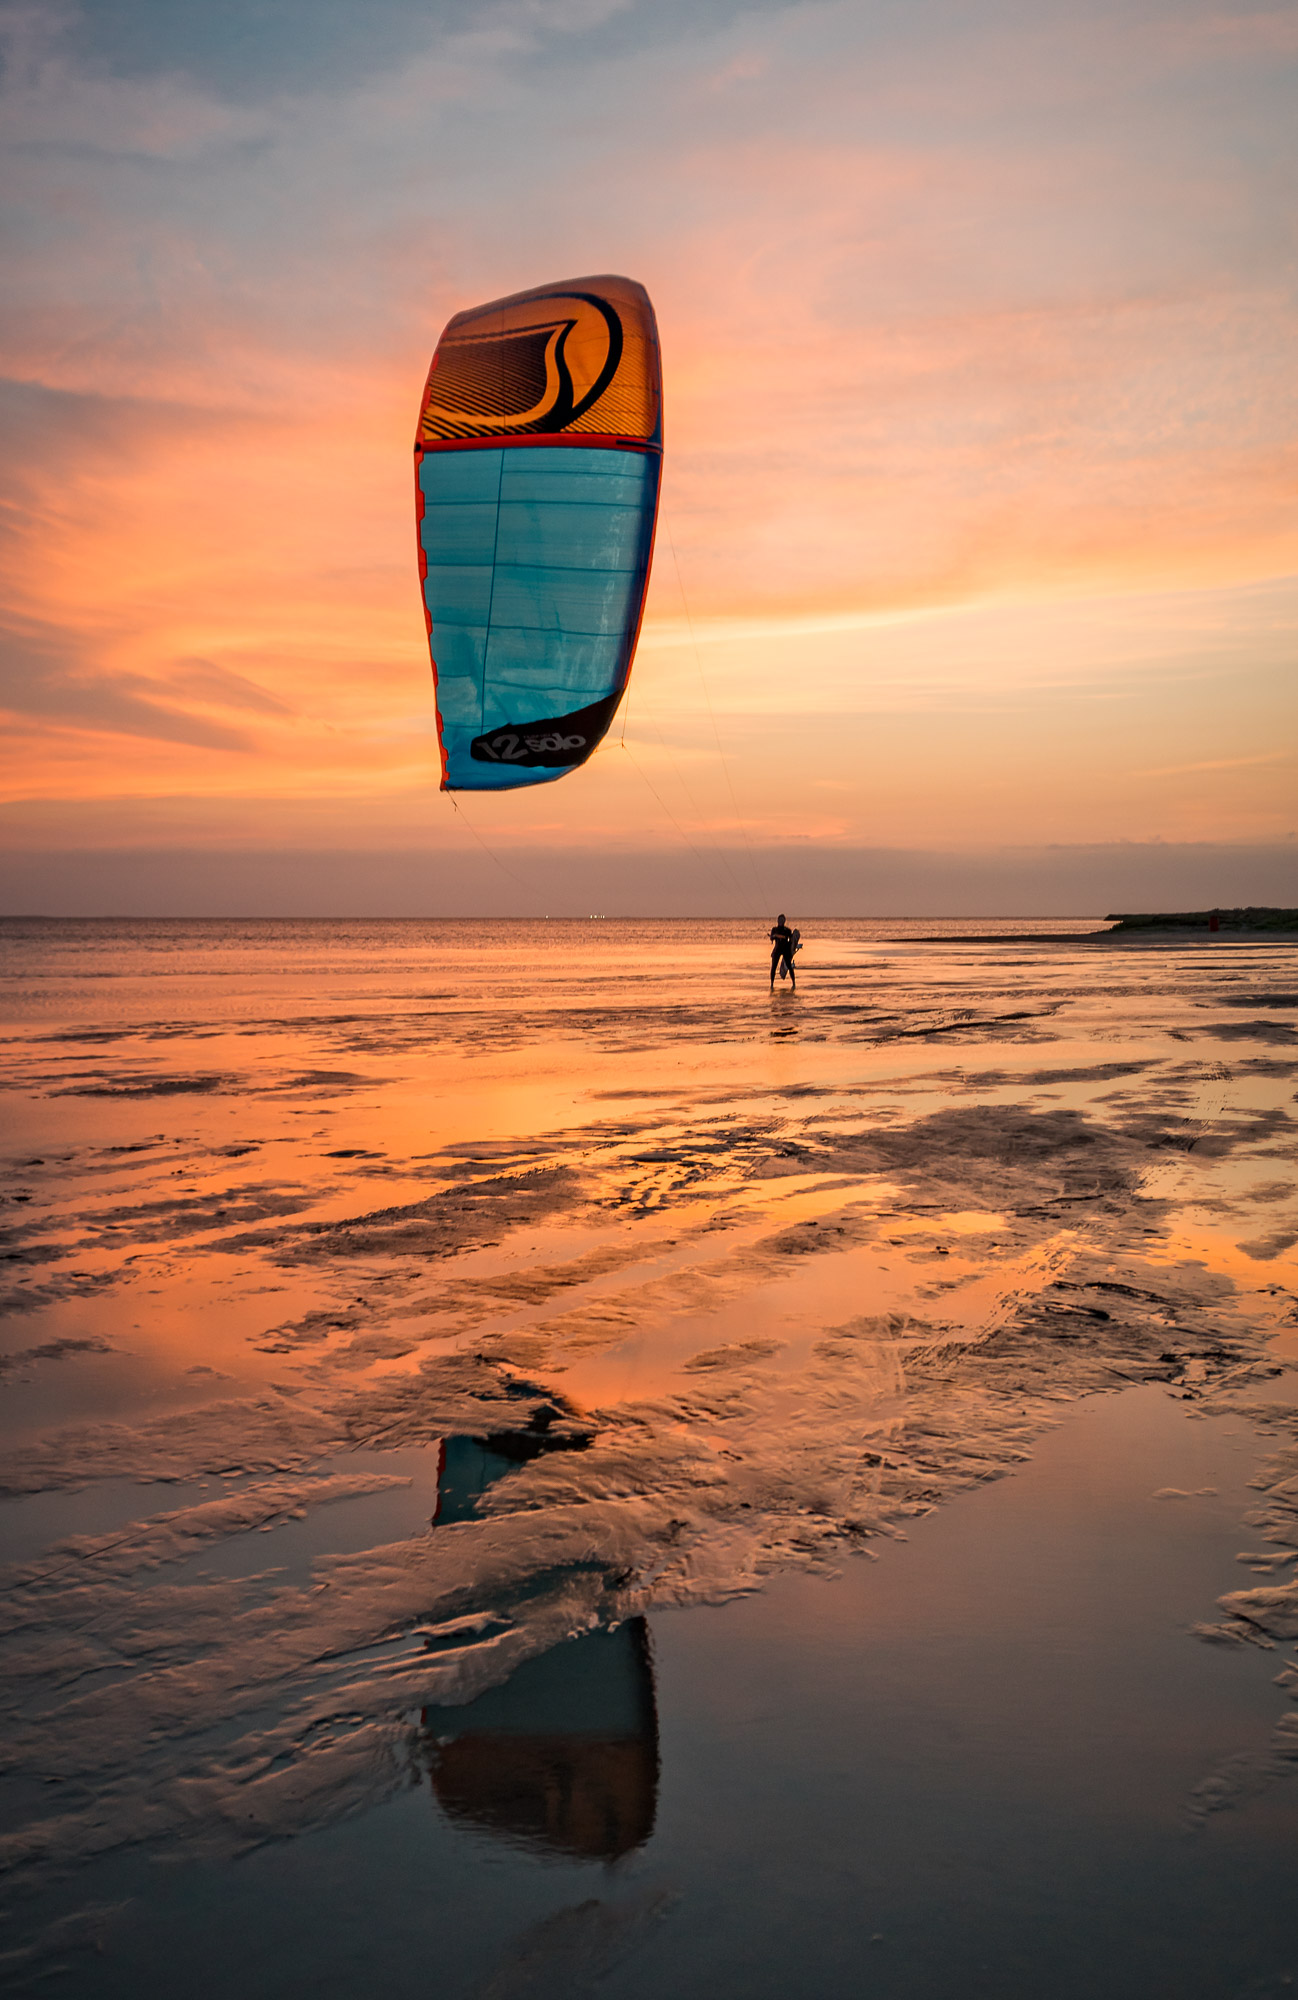 Last Kiter Out: Sony A6300: 19mm, F4, 1/60s, ISO 320